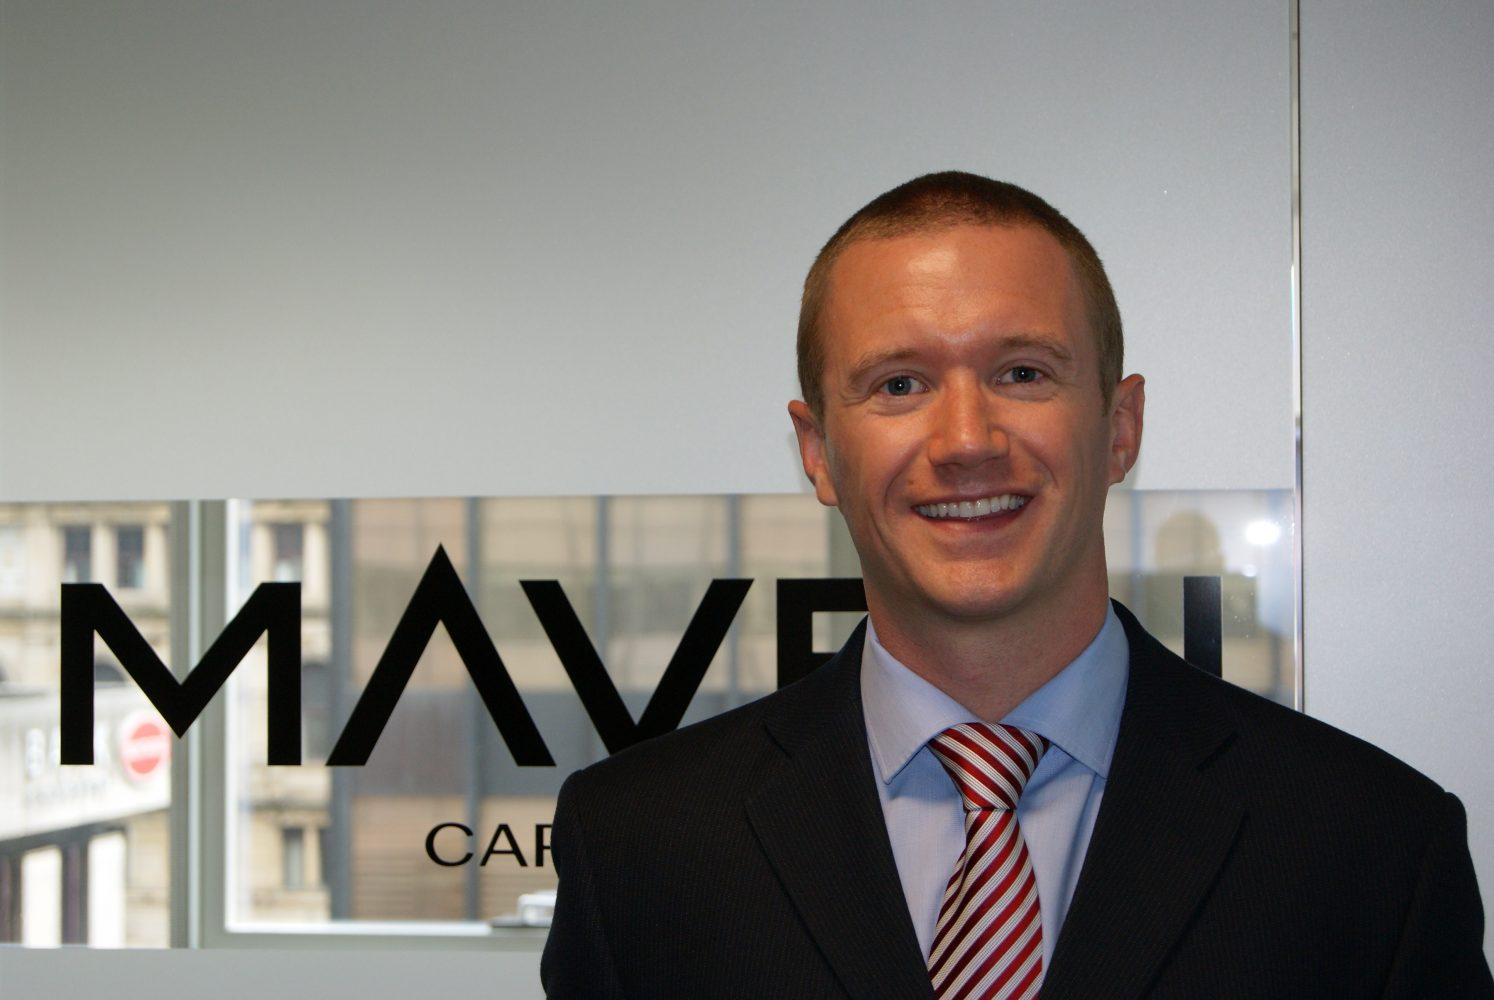 A headshot of Ryan Bevington, the Investment Director at Maven